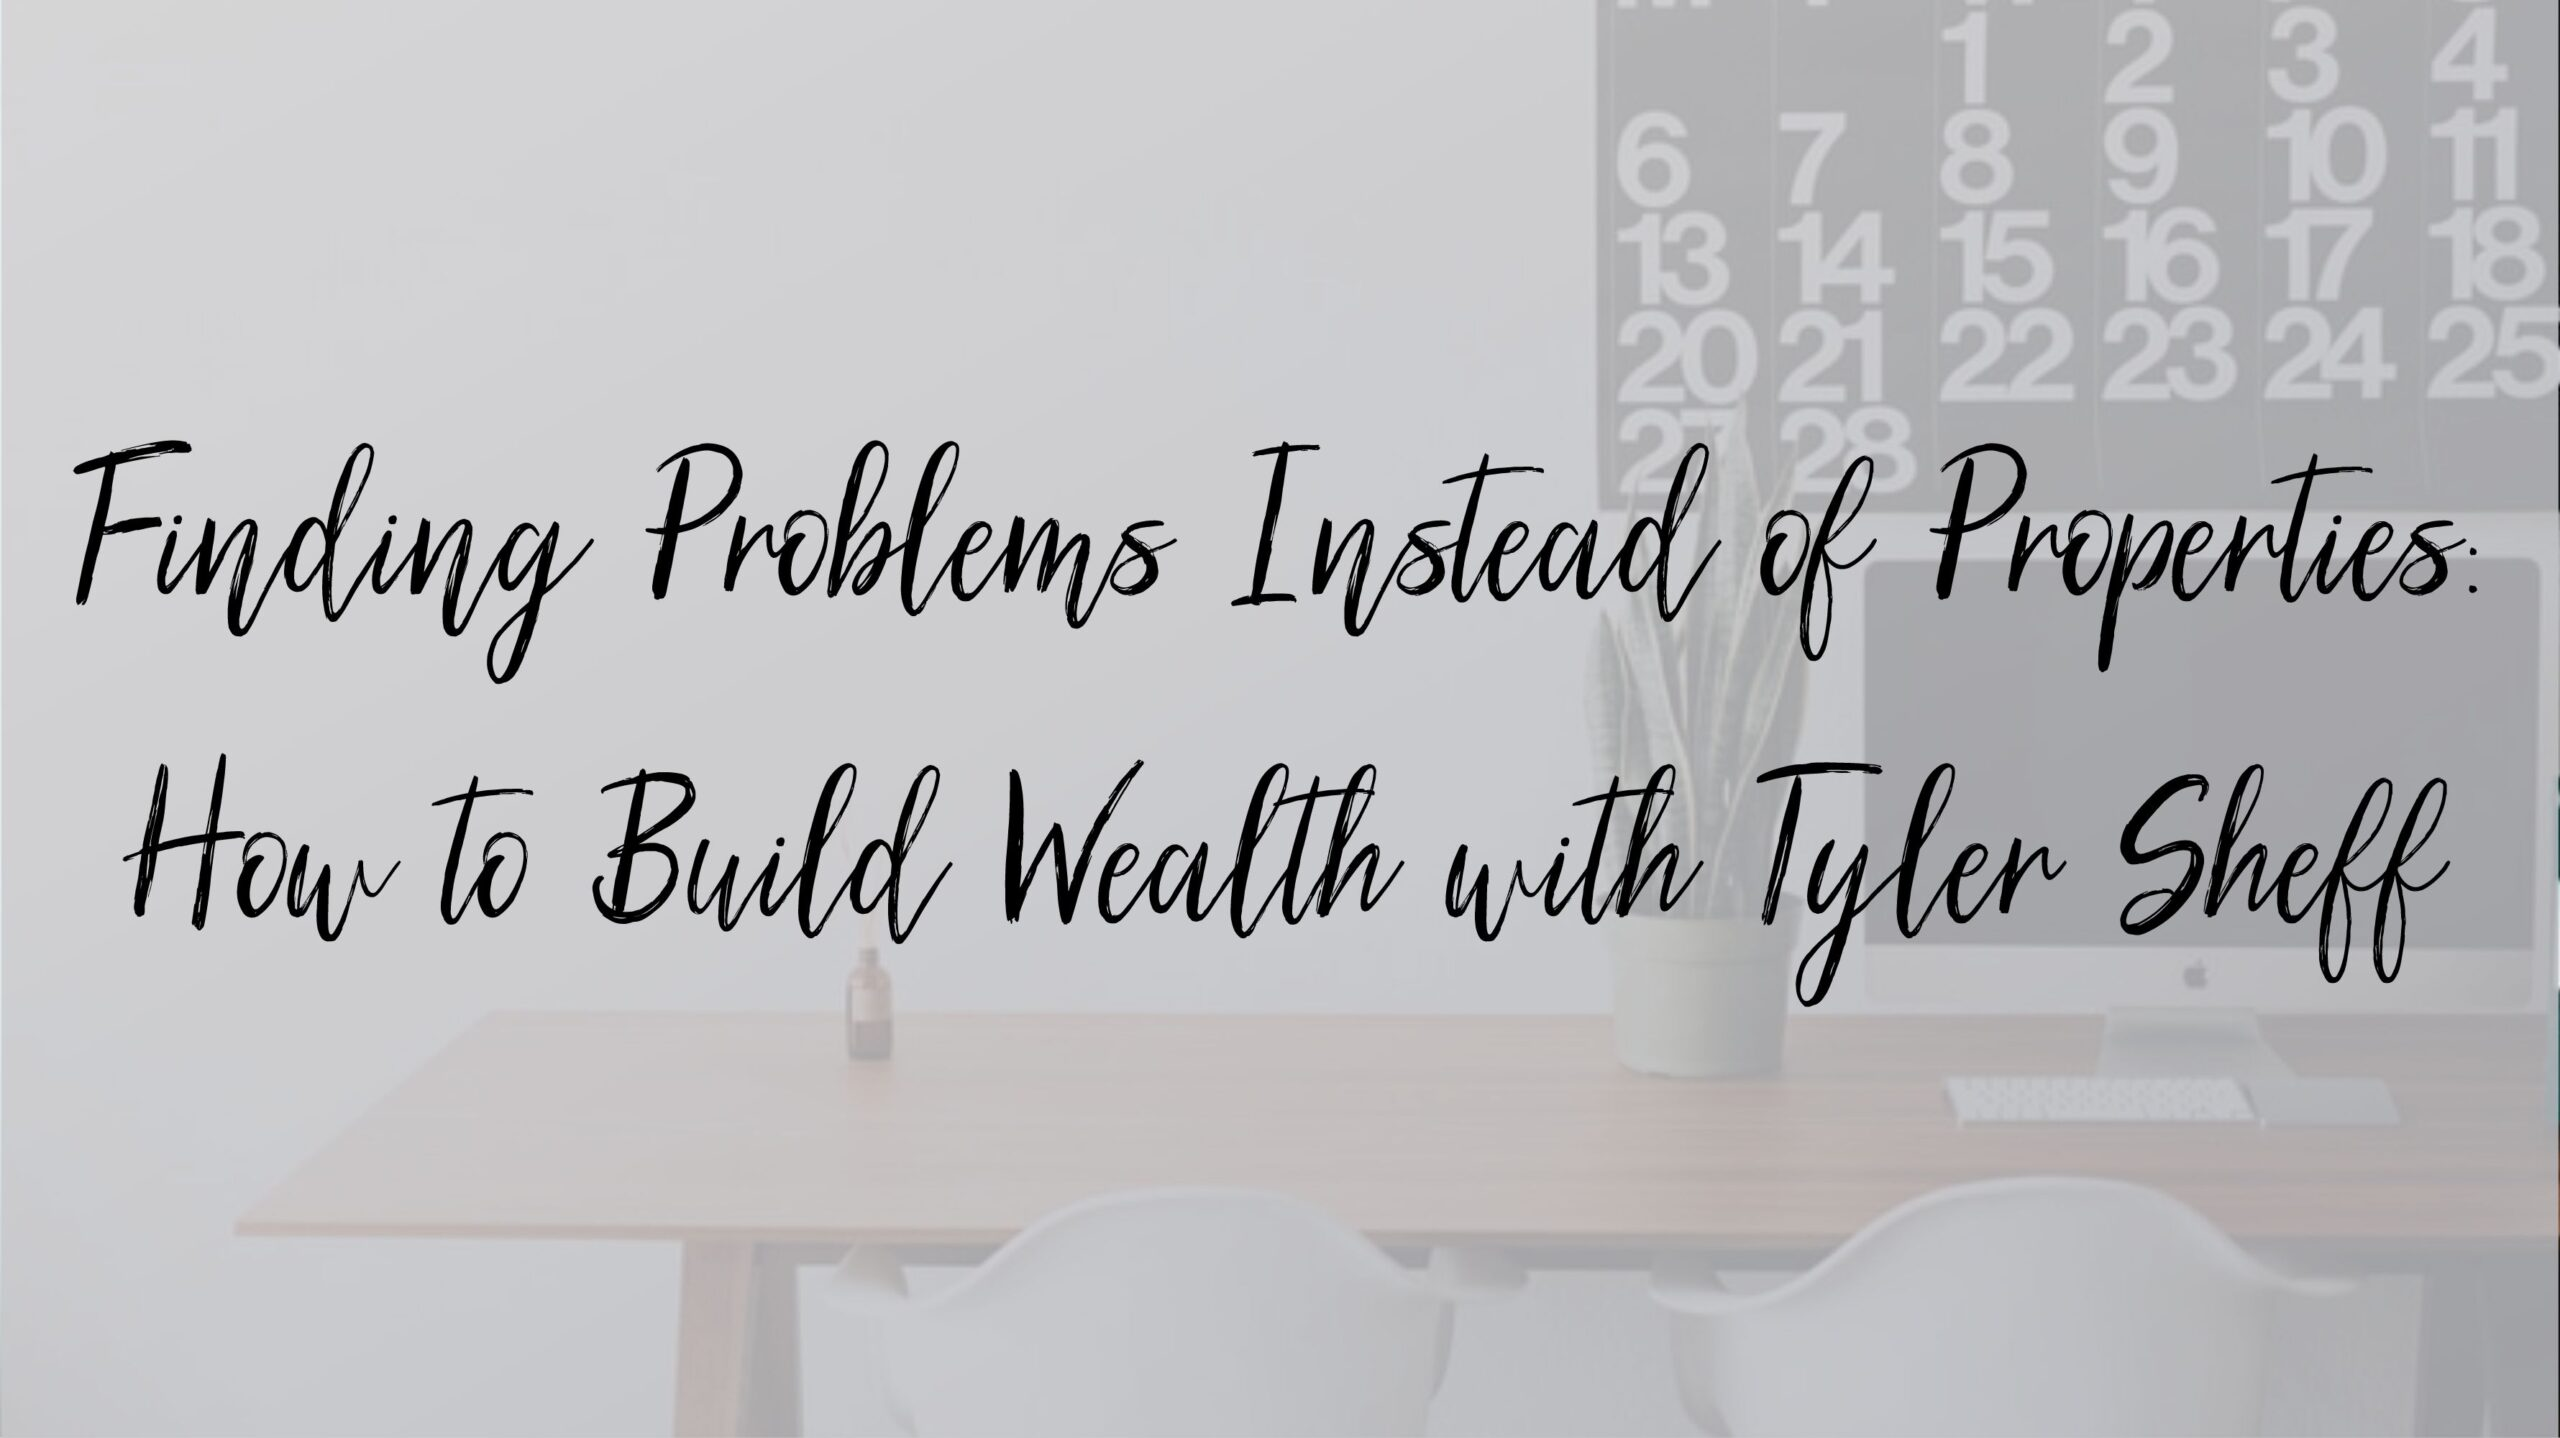 Finding Problems Instead of Properties: How to Build Wealth with Tyler Sheff